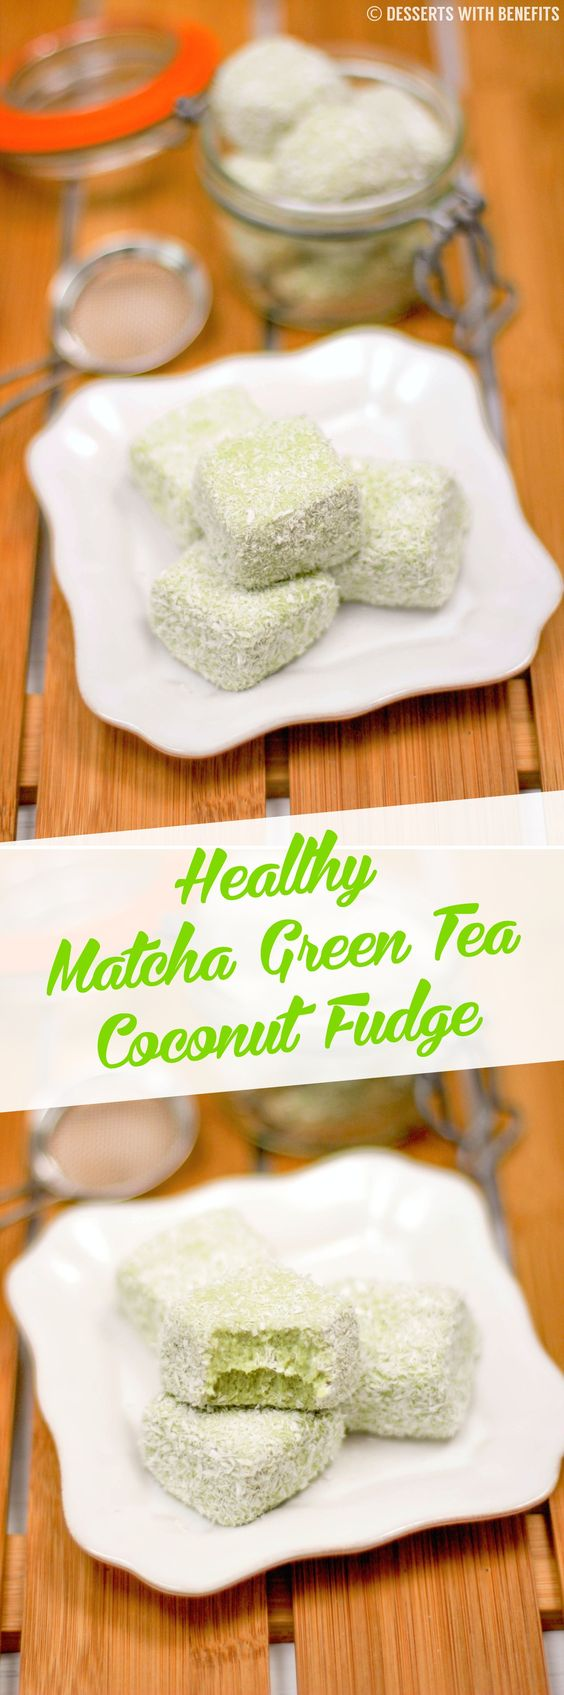 Guilt-Free Matcha Green Tea Coconut Fudge! Yup, you read that right... sweet, soft and decadent, yet sugar free, low carb, low fat, low calorie and high protein! If you're a tea-drinker and if you're a dessert lover (and oh gosh, please say yes, because I really hope you are), then this Healthy Matcha Green Tea Coconut Fudge is for you! It's super soft and fluffy and flavorful and sweet, but without the butter and sugar! @kitchendailypin #InTheRaw